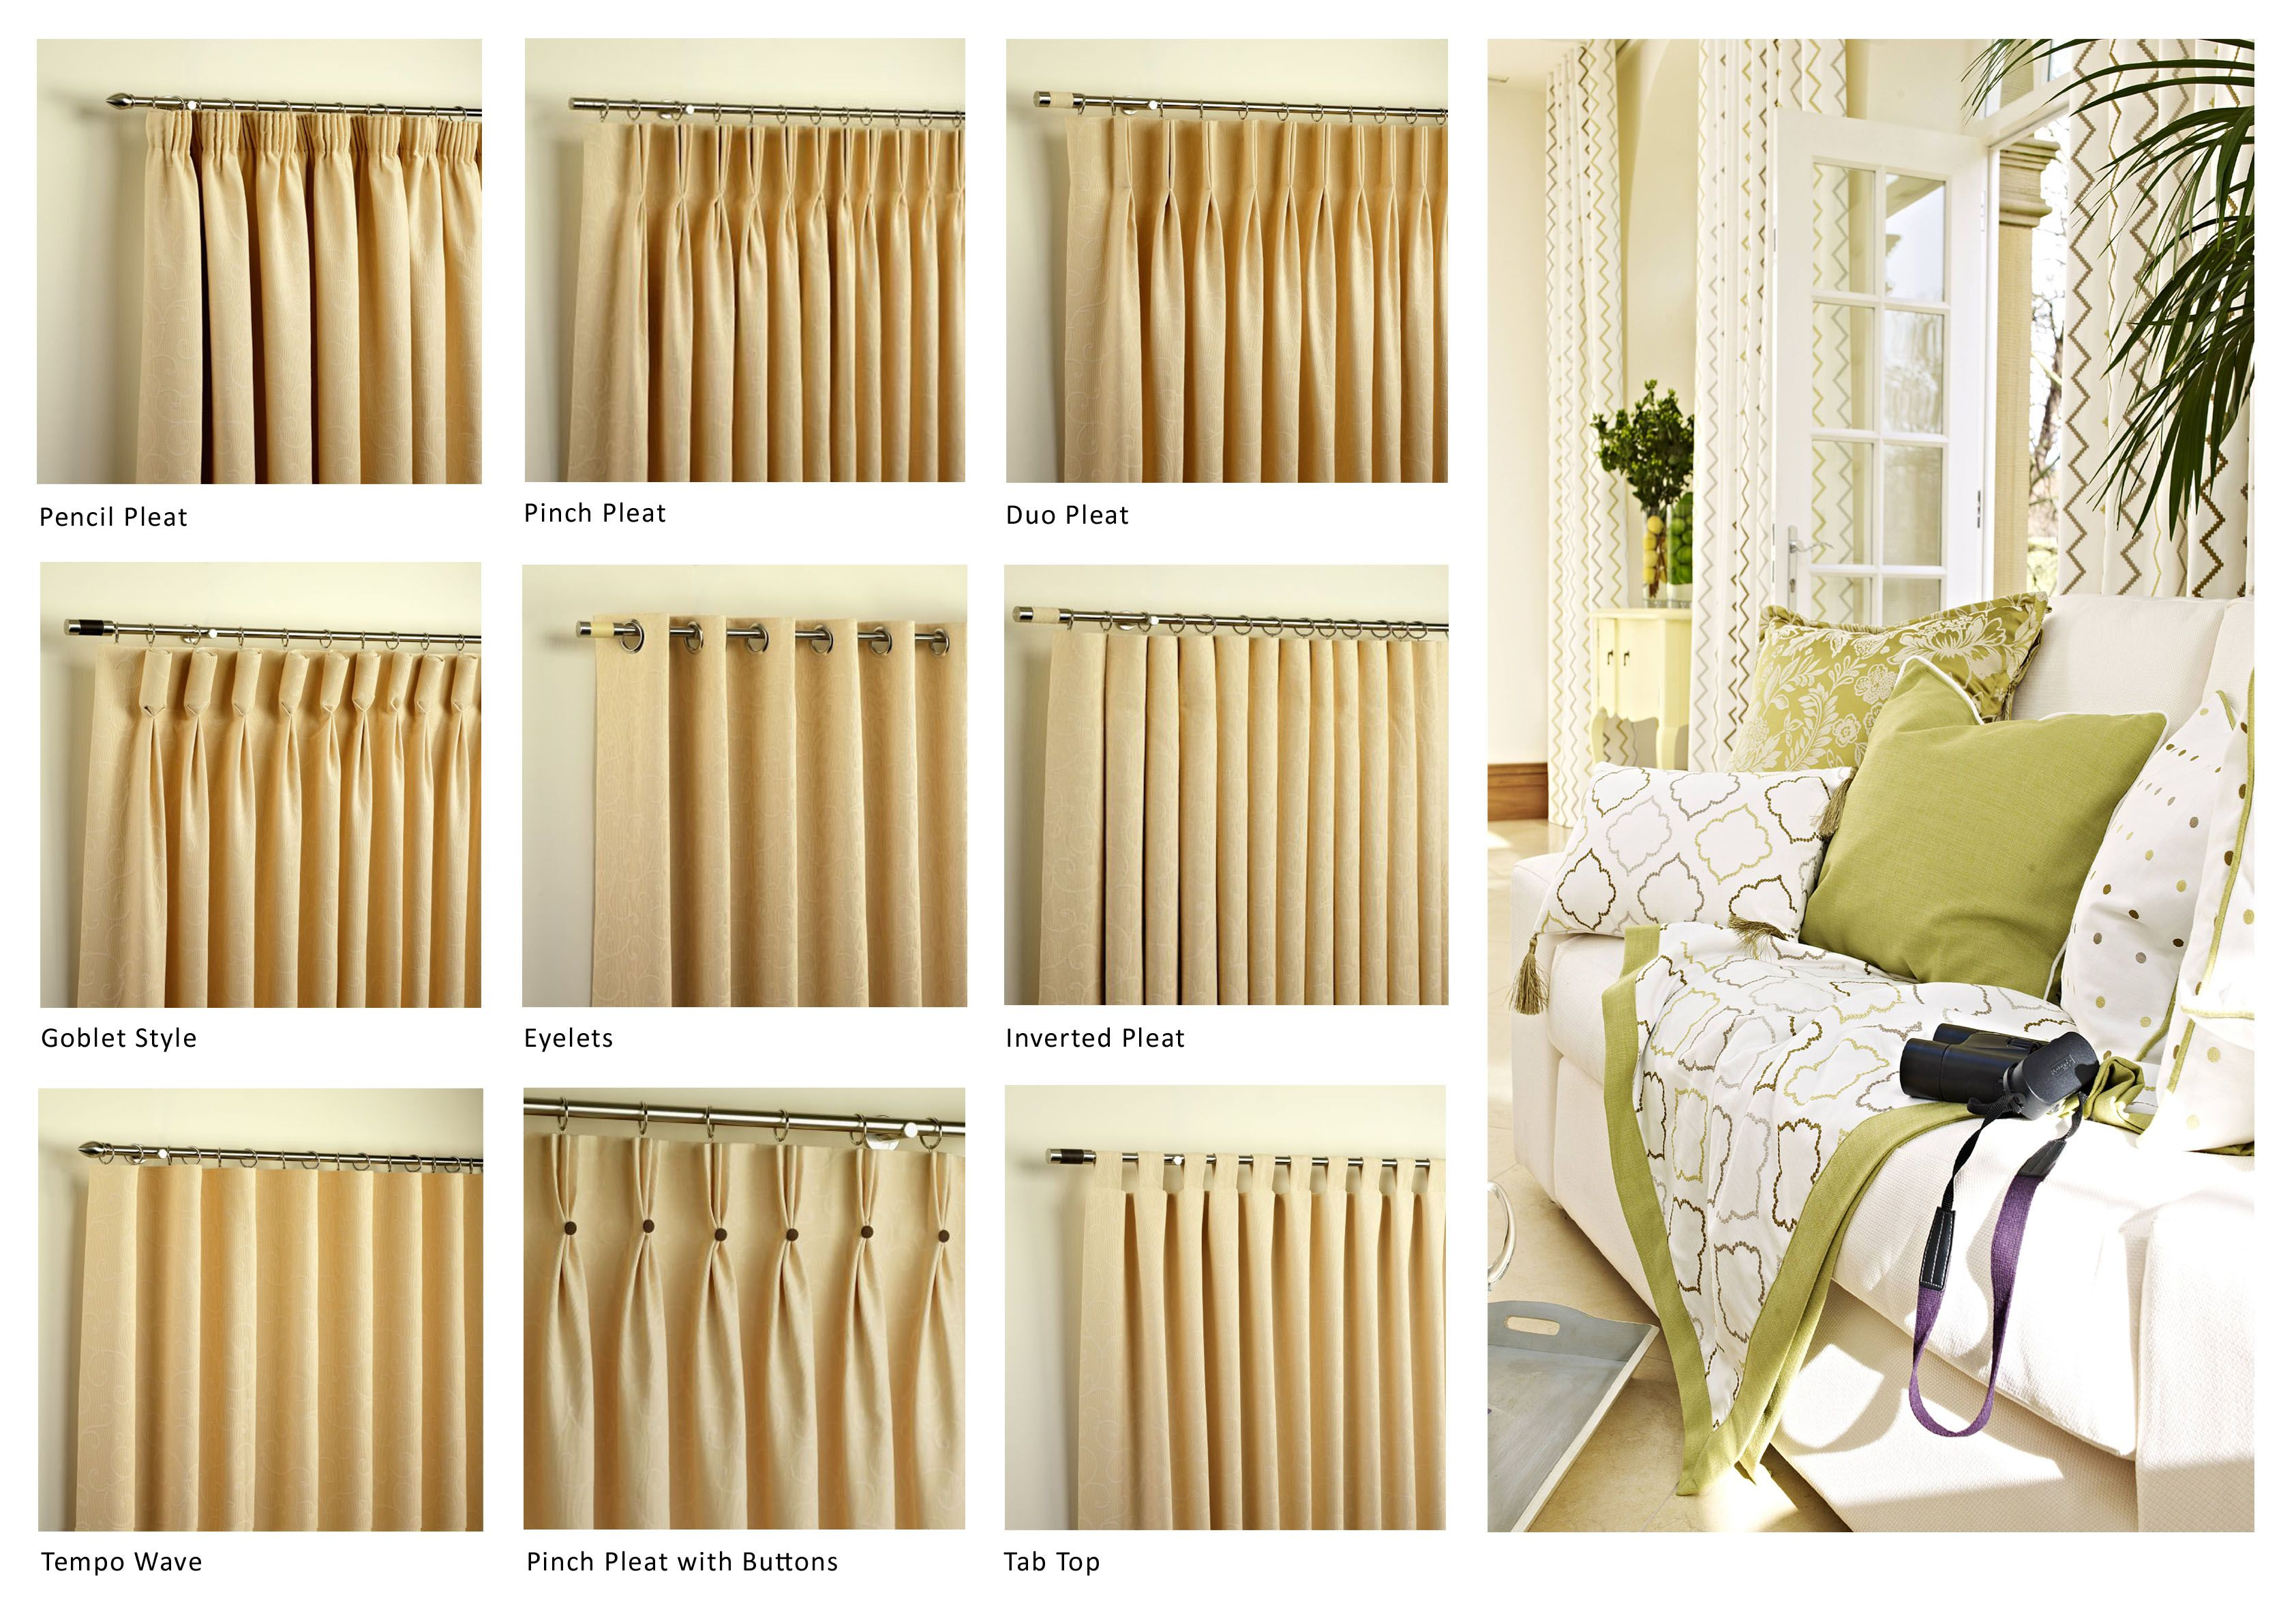 Drapes UK Curtain Heading Pictures with different styles